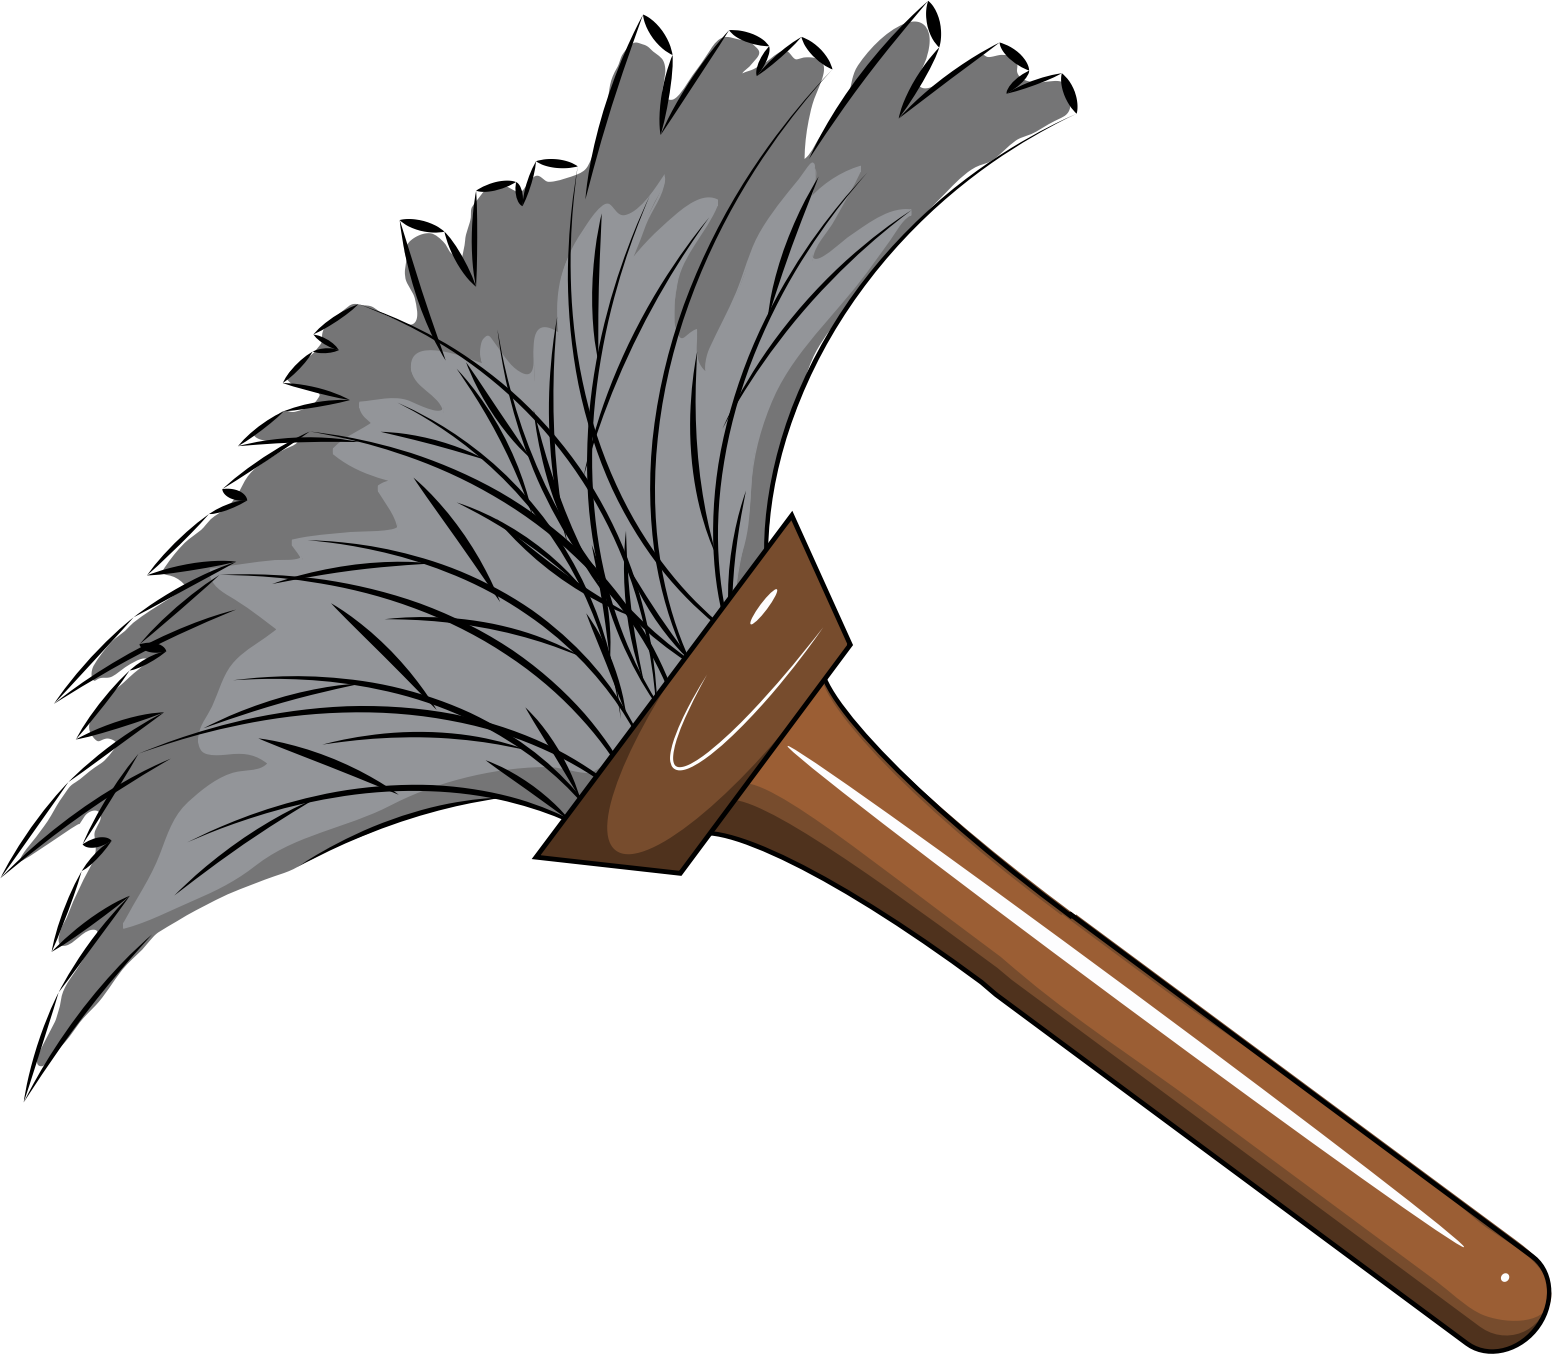 clip art freeuse library Feather big image png. Broom clipart duster